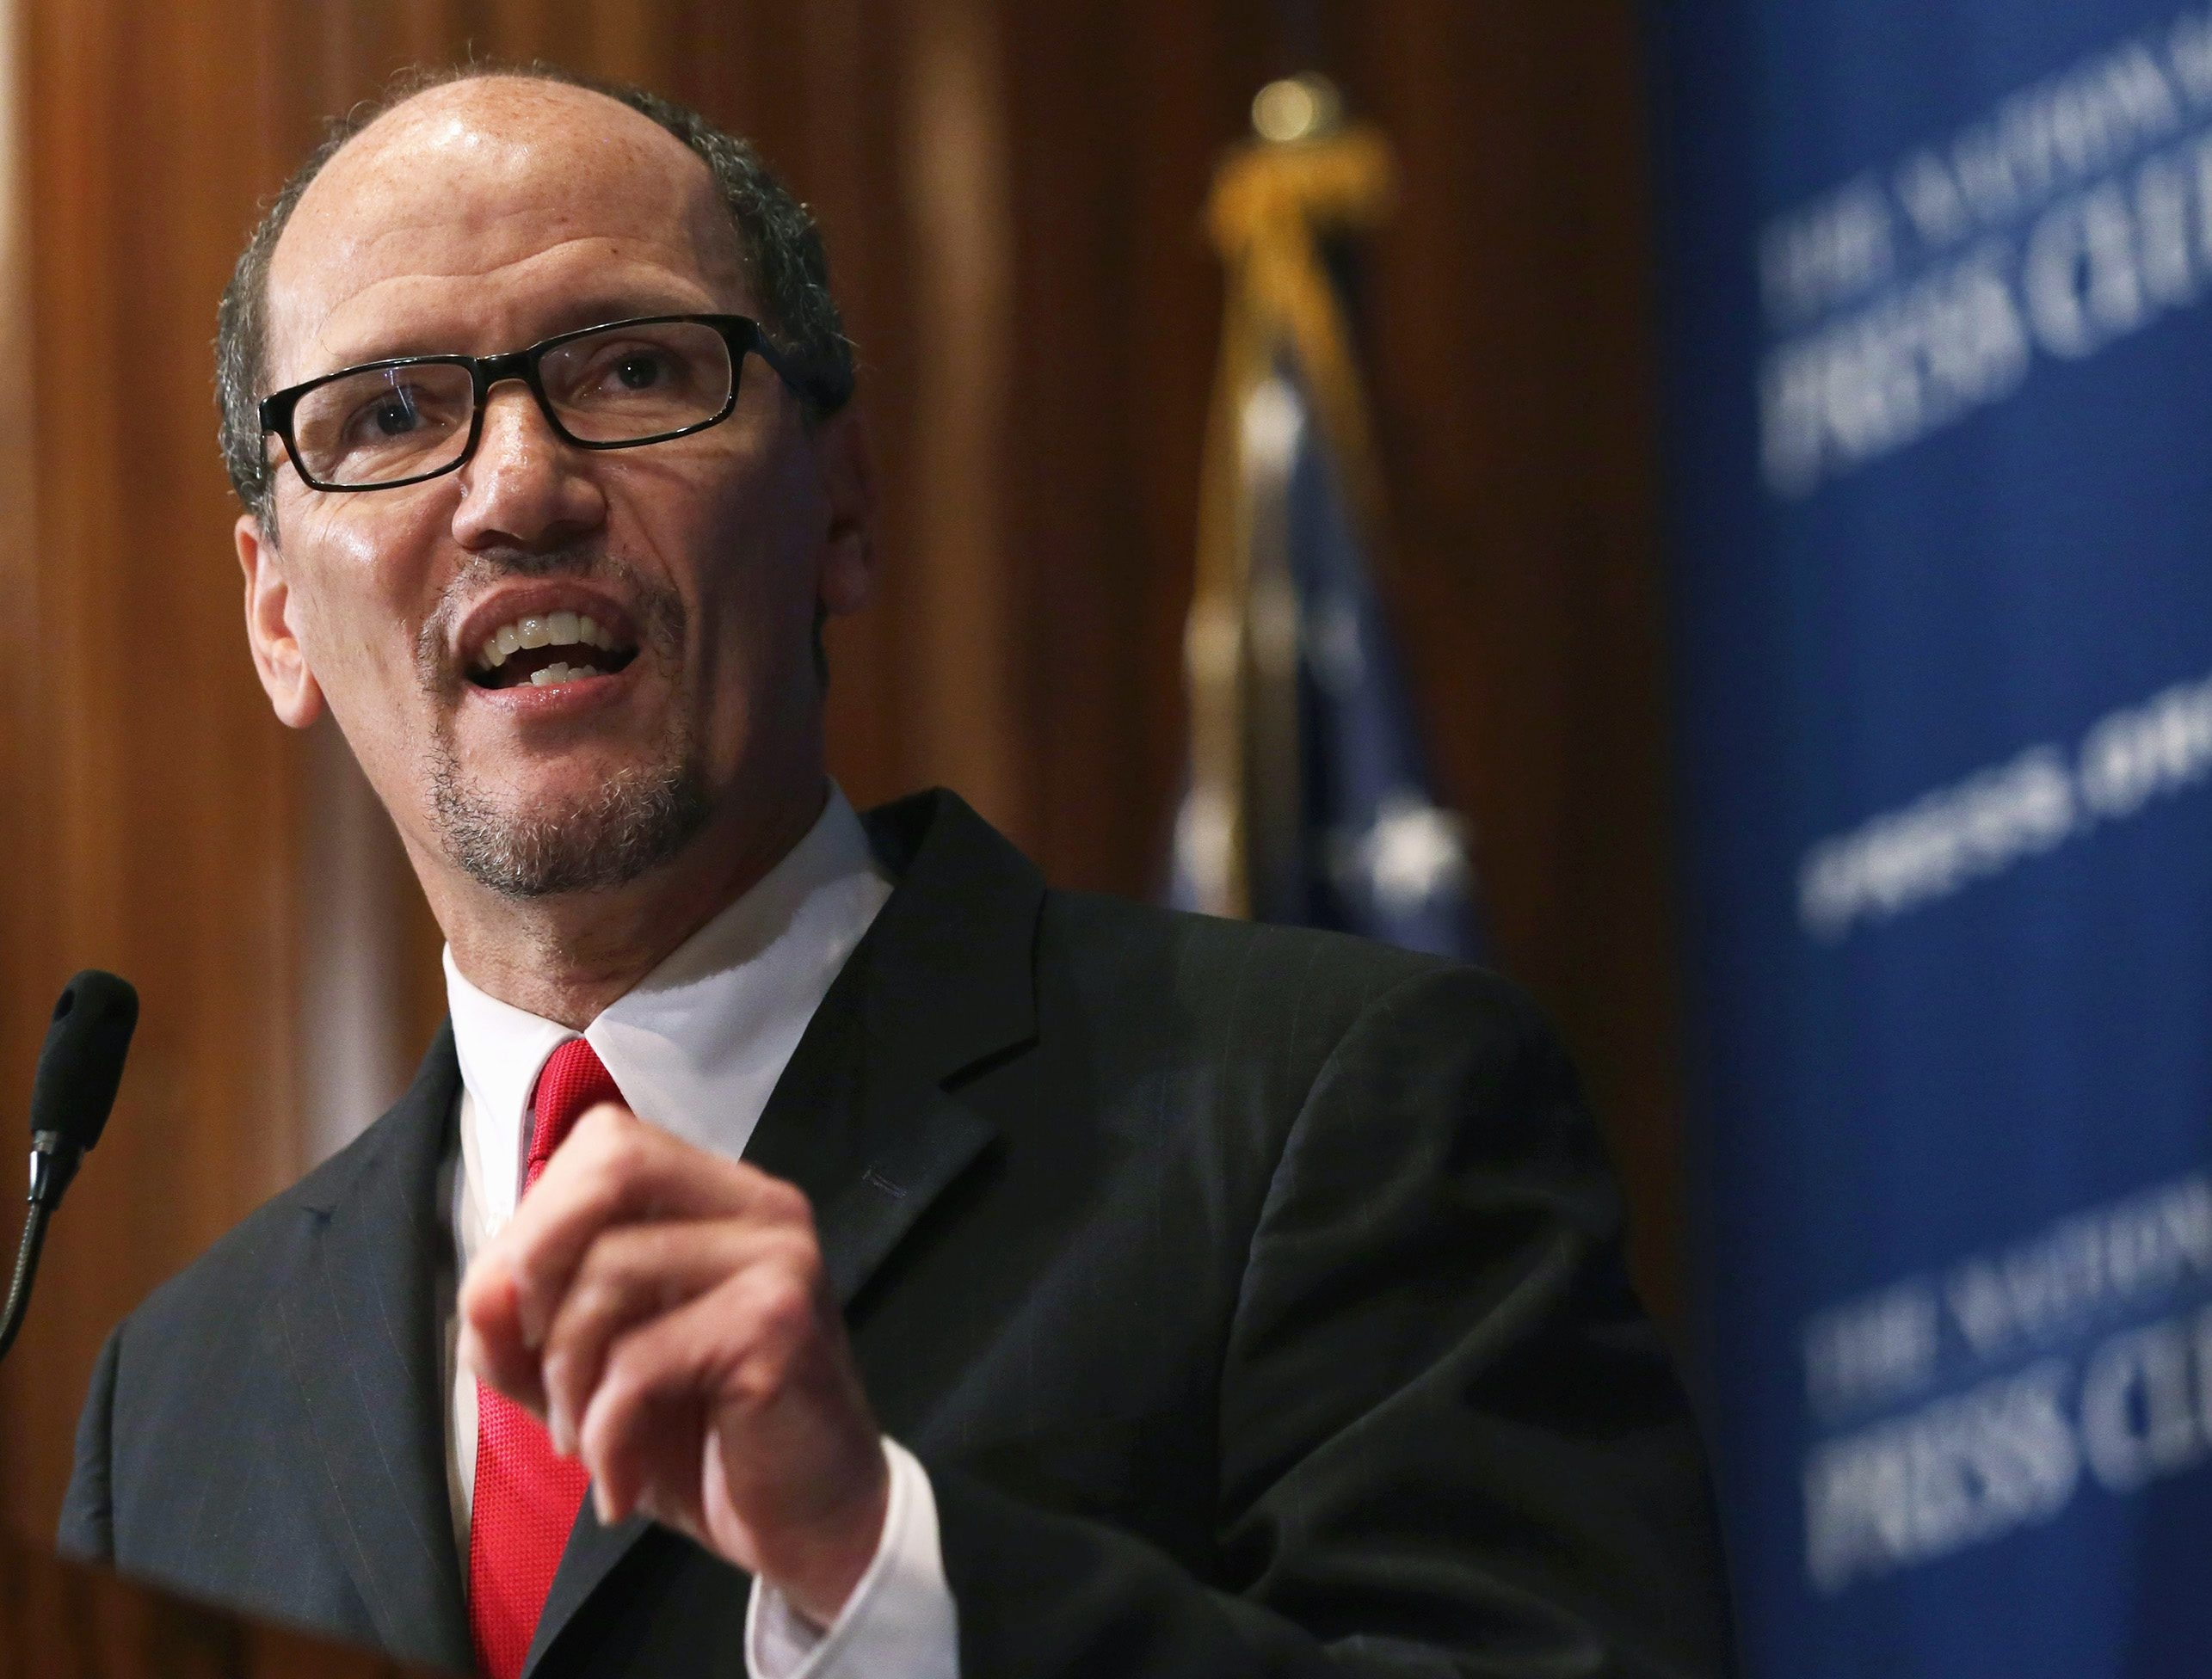 """WASHINGTON, DC - OCTOBER 20:  U.S. Labor Secretary Thomas Perez speaks during a National Press Club  luncheon October 20, 2014 in Washington, DC. Secretary Perez spoke on """"An Economy That Works for Everyone: The Labor Secretary's Perspective.""""  (Photo by Alex Wong/Getty Images)"""